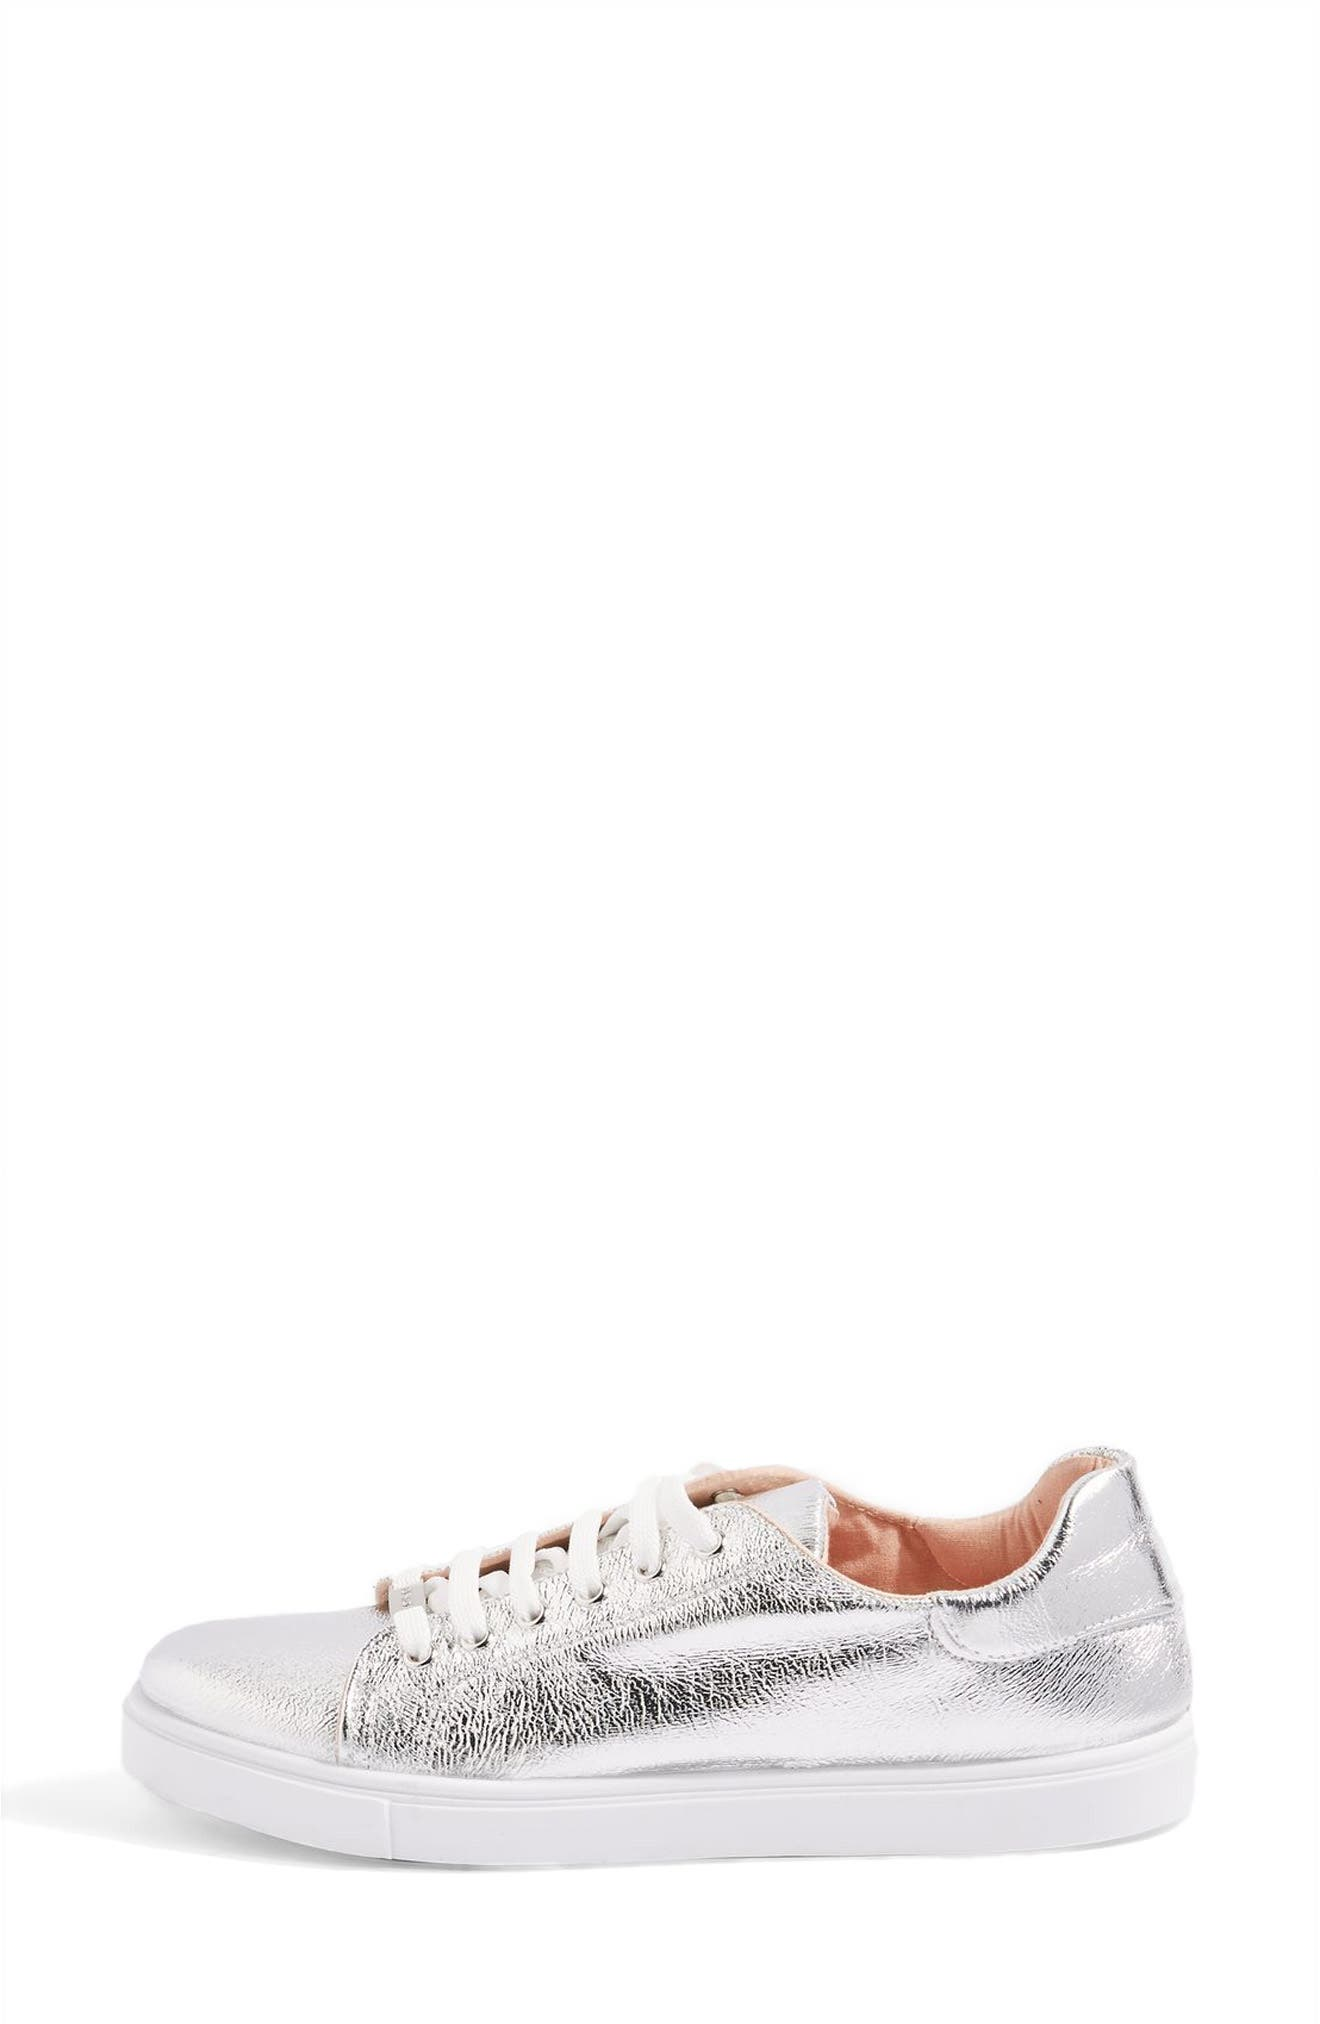 Cosmo Metallic Lace-Up Sneaker,                             Alternate thumbnail 2, color,                             Silver